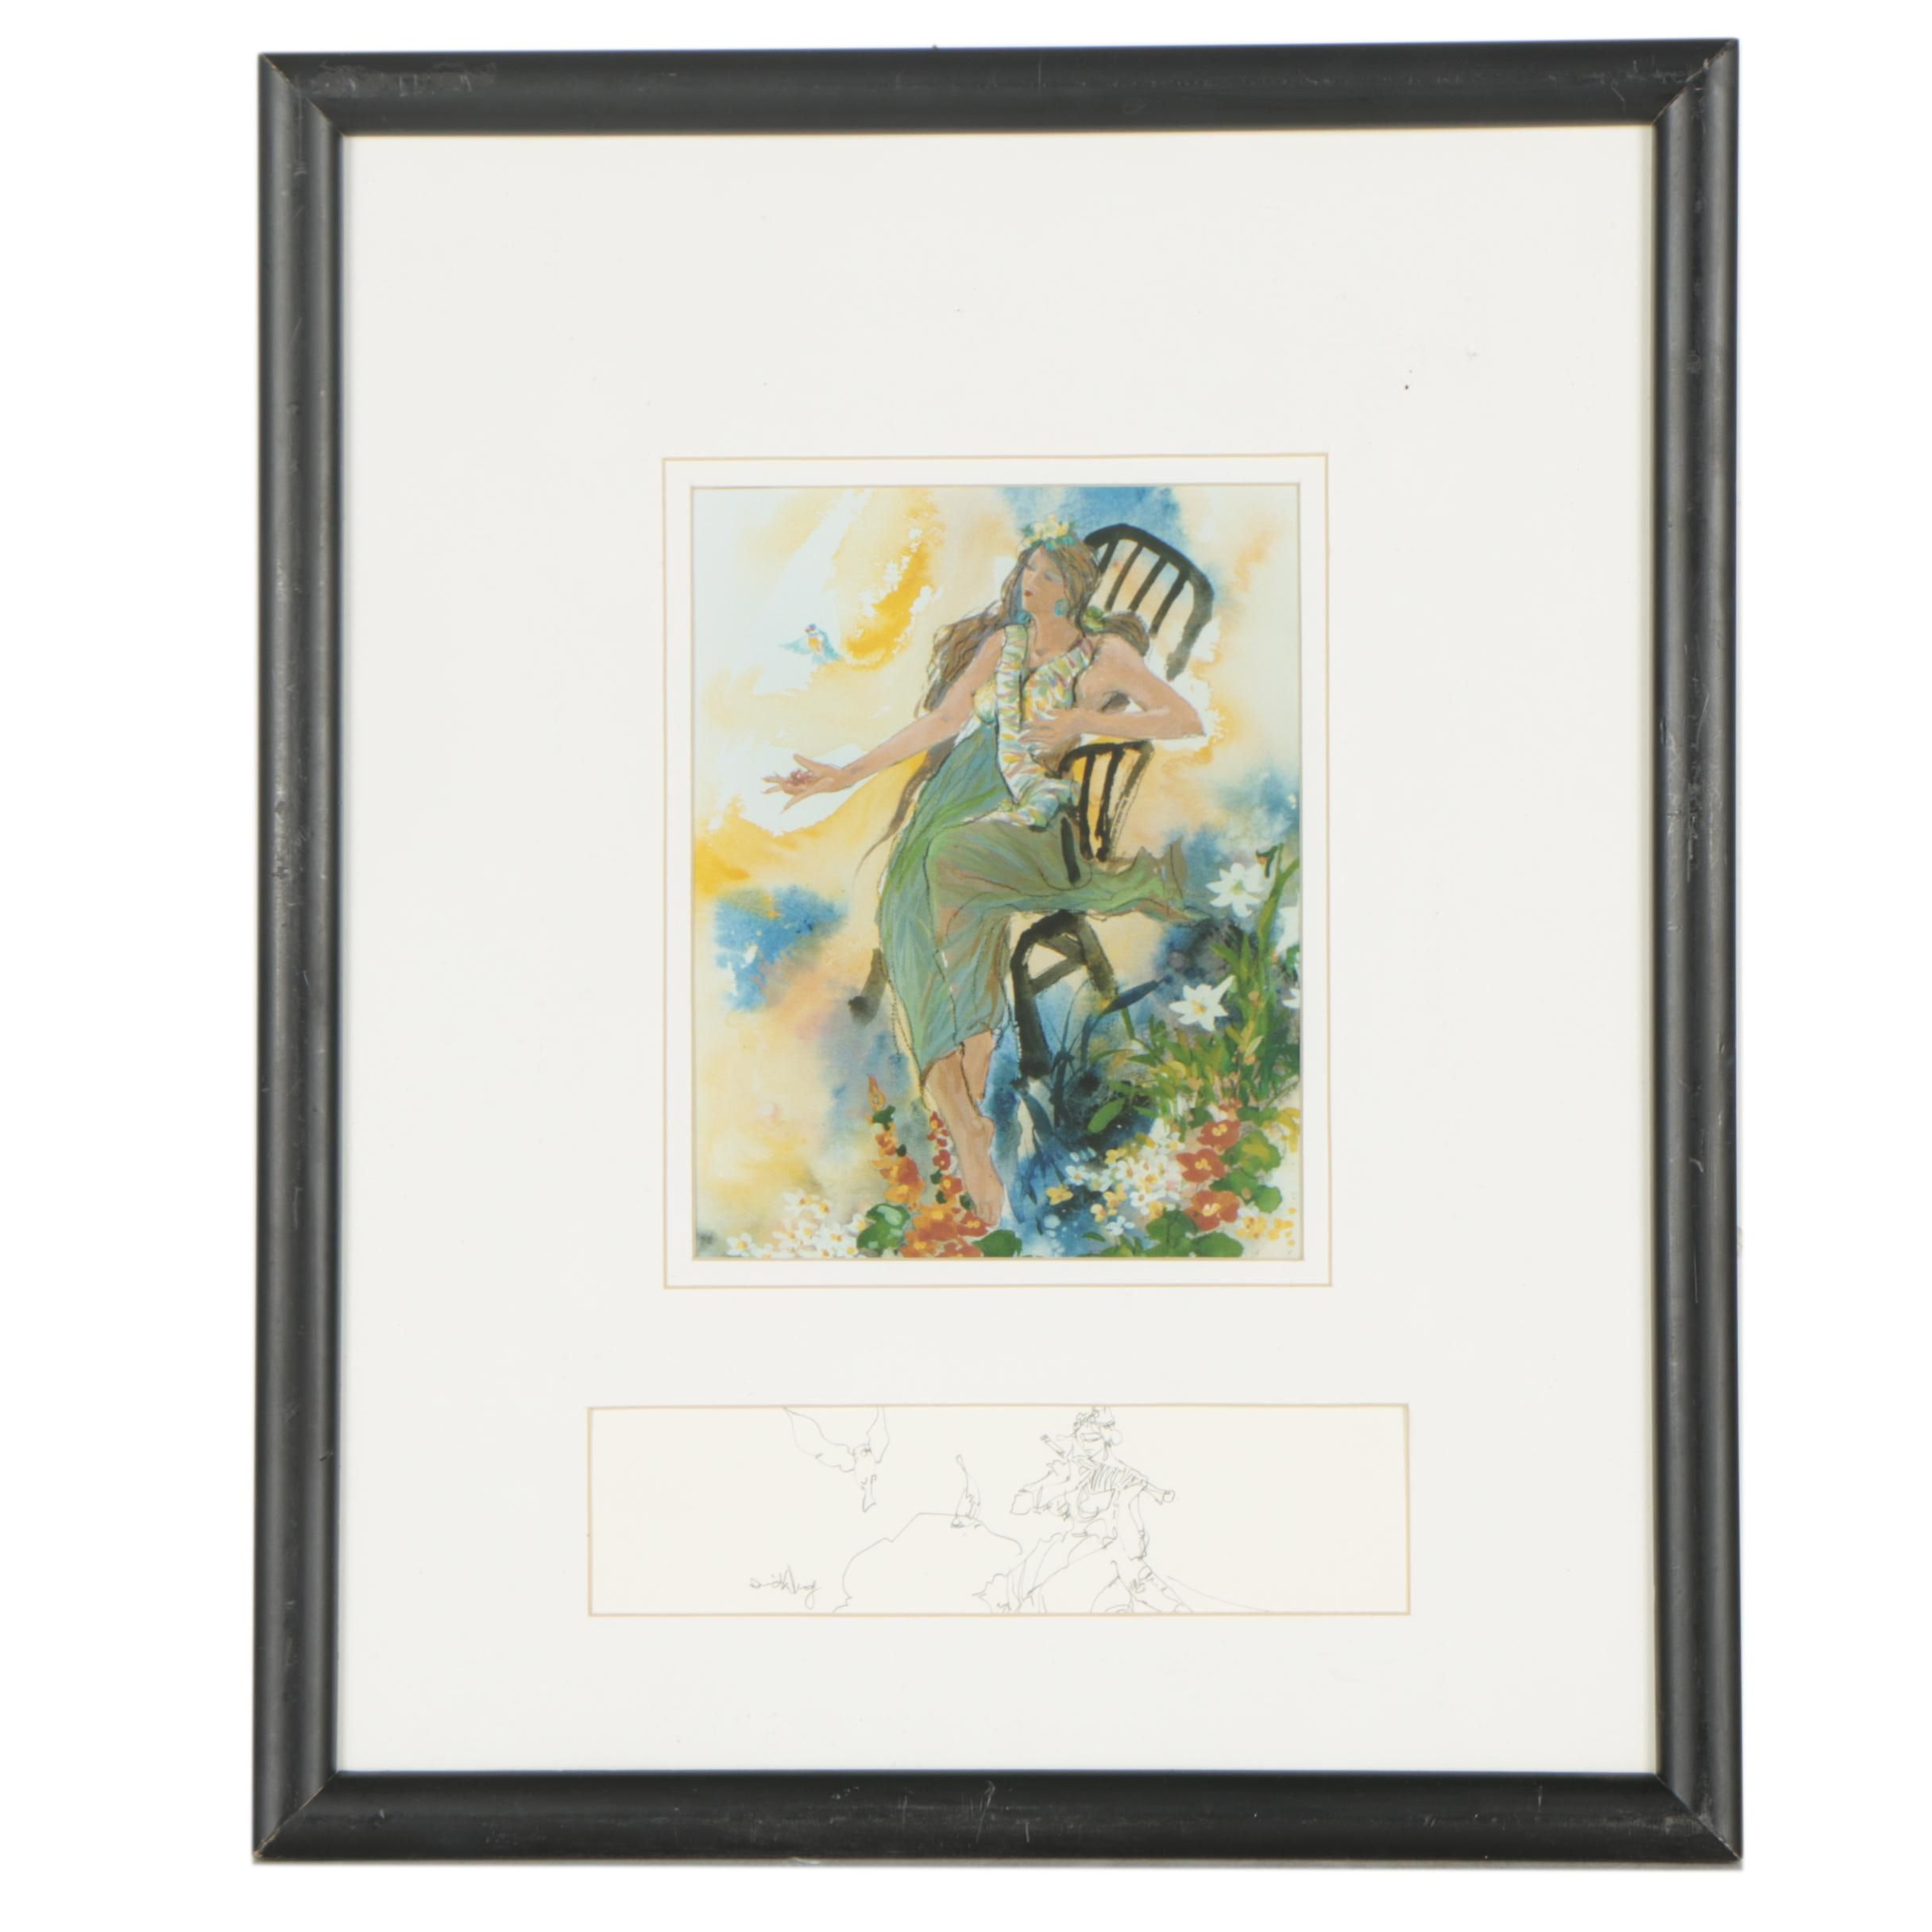 David Wong Giclée Reproduction Print with Graphite Drawing